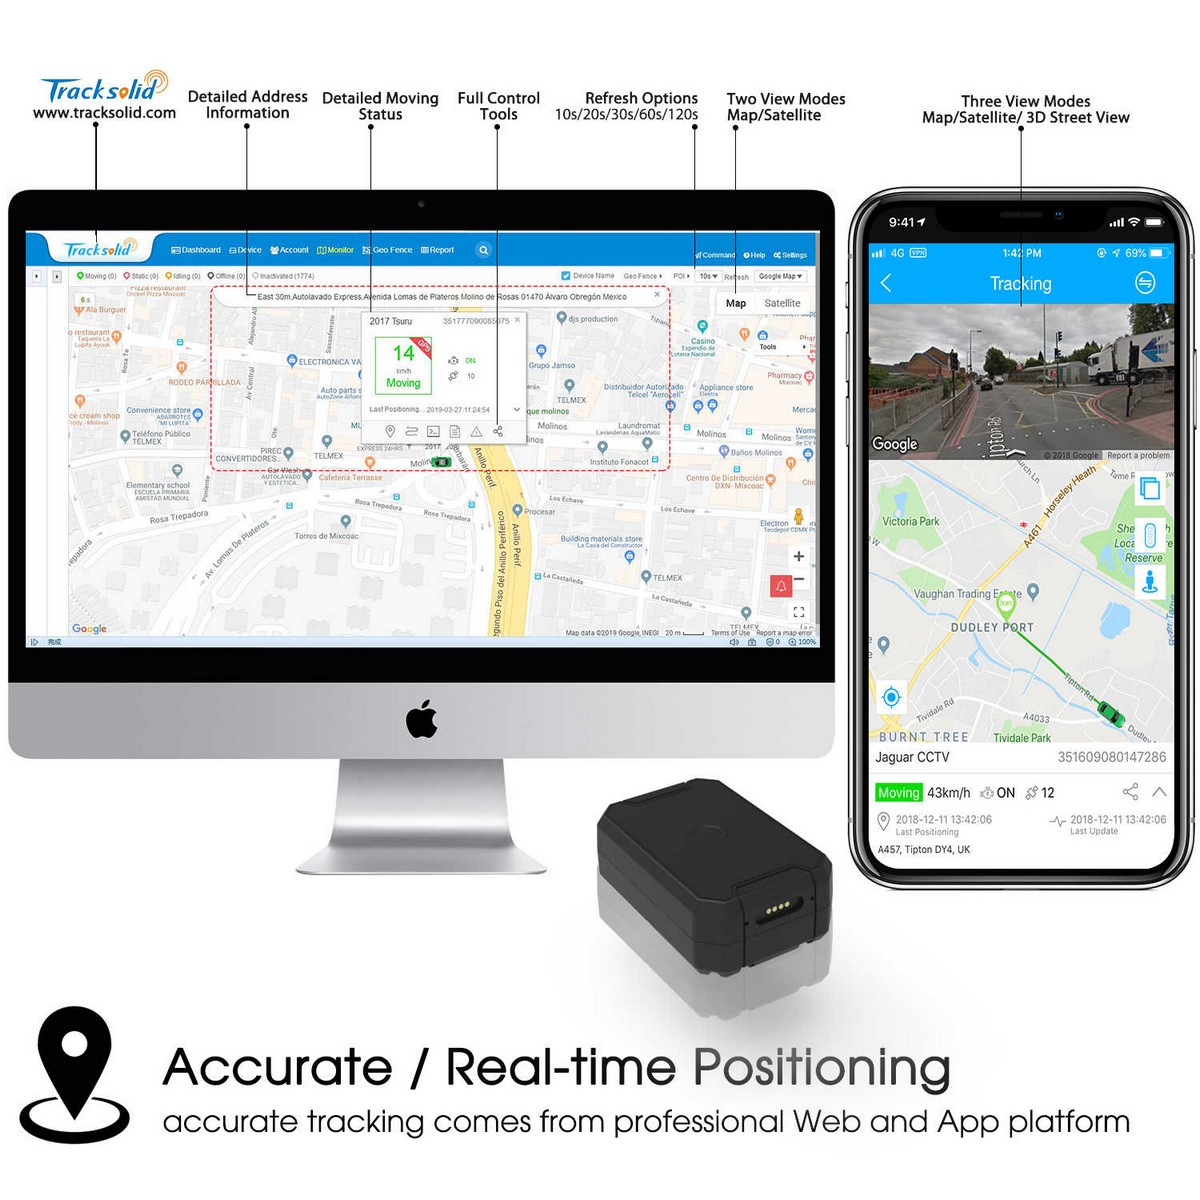 gps locator tracking via app in mobile phone